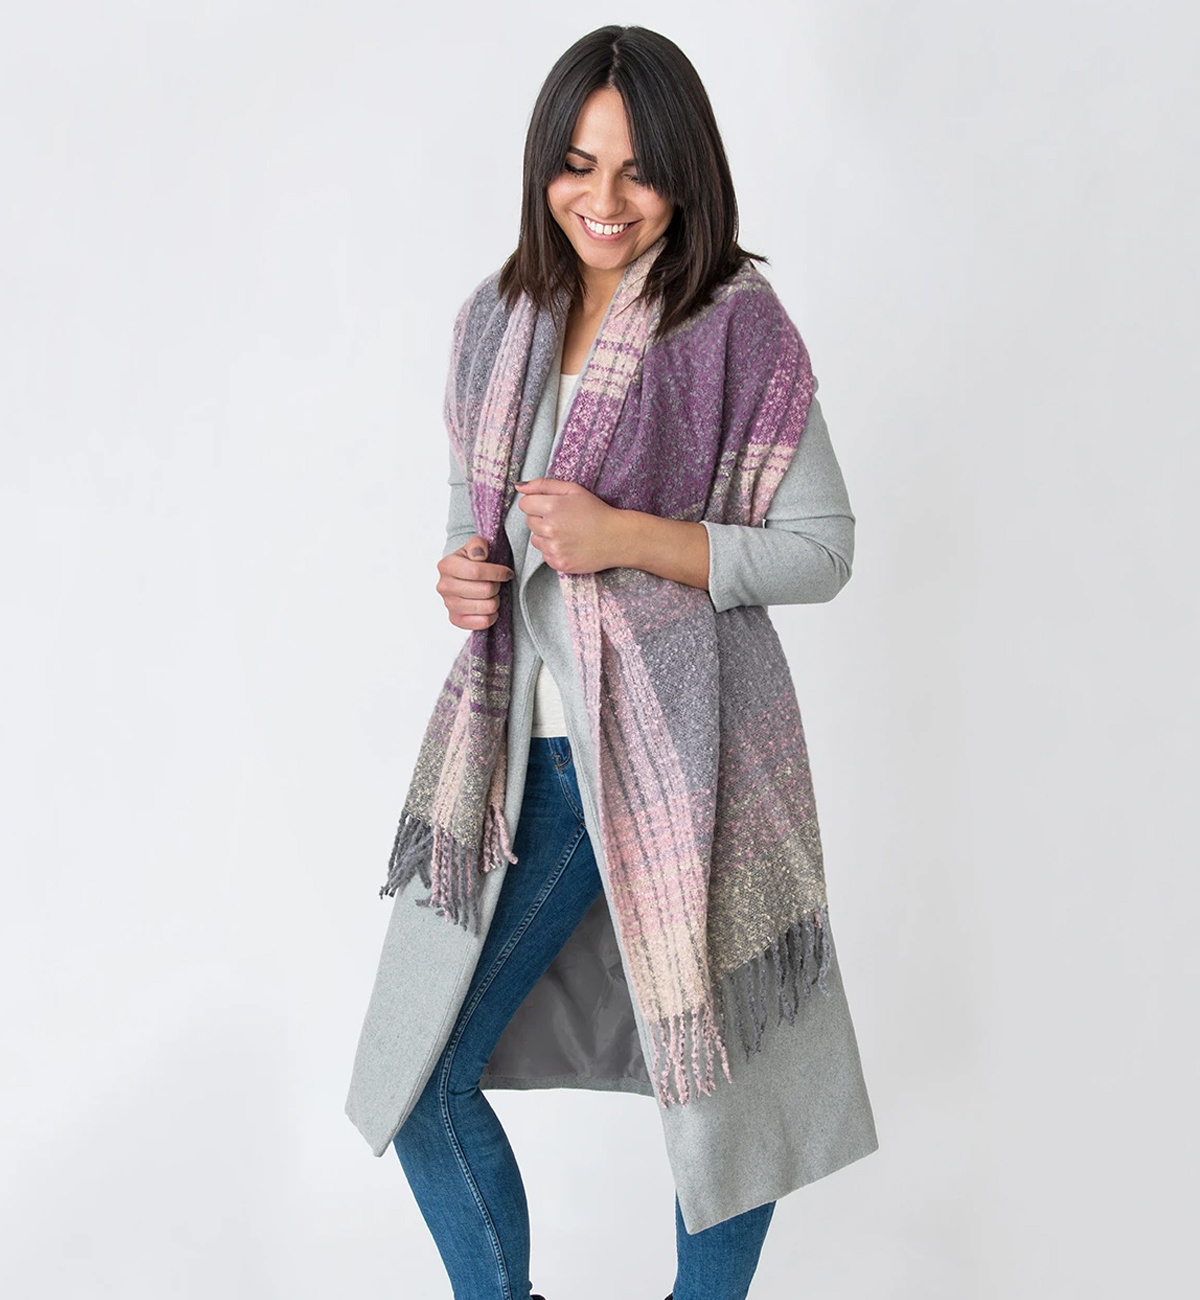 Millie-Mae-Womens-Imogen-Check-Boucle-Wrap---Purple.jpg